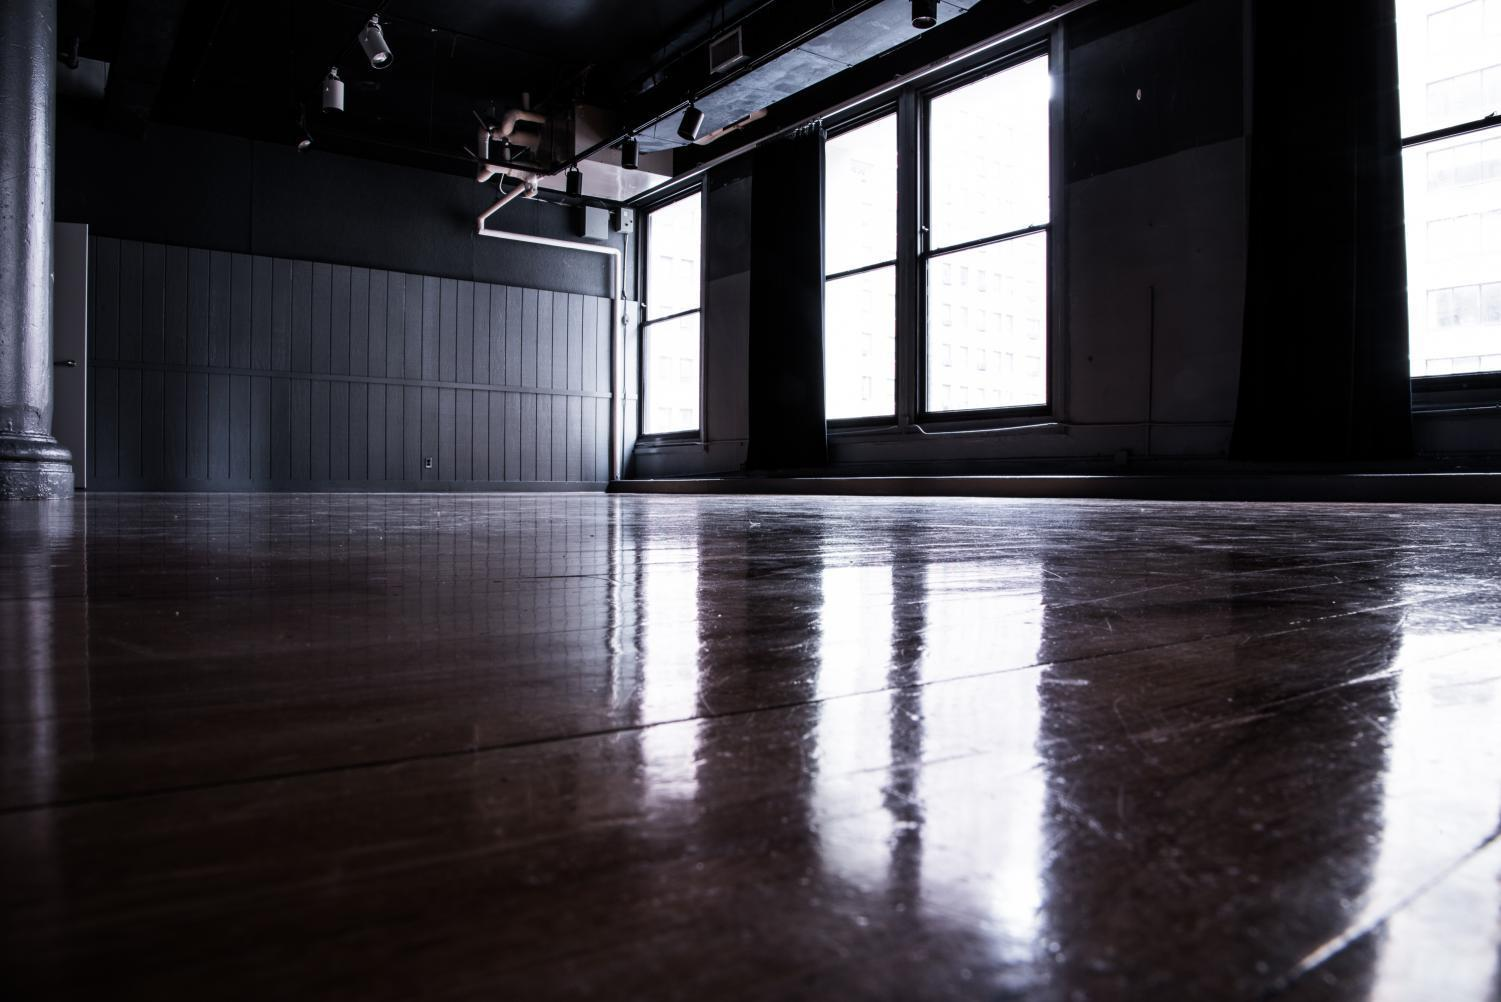 Studio 3 of the Experimental Theater Wing is one of many studios at Tisch School of the Arts.